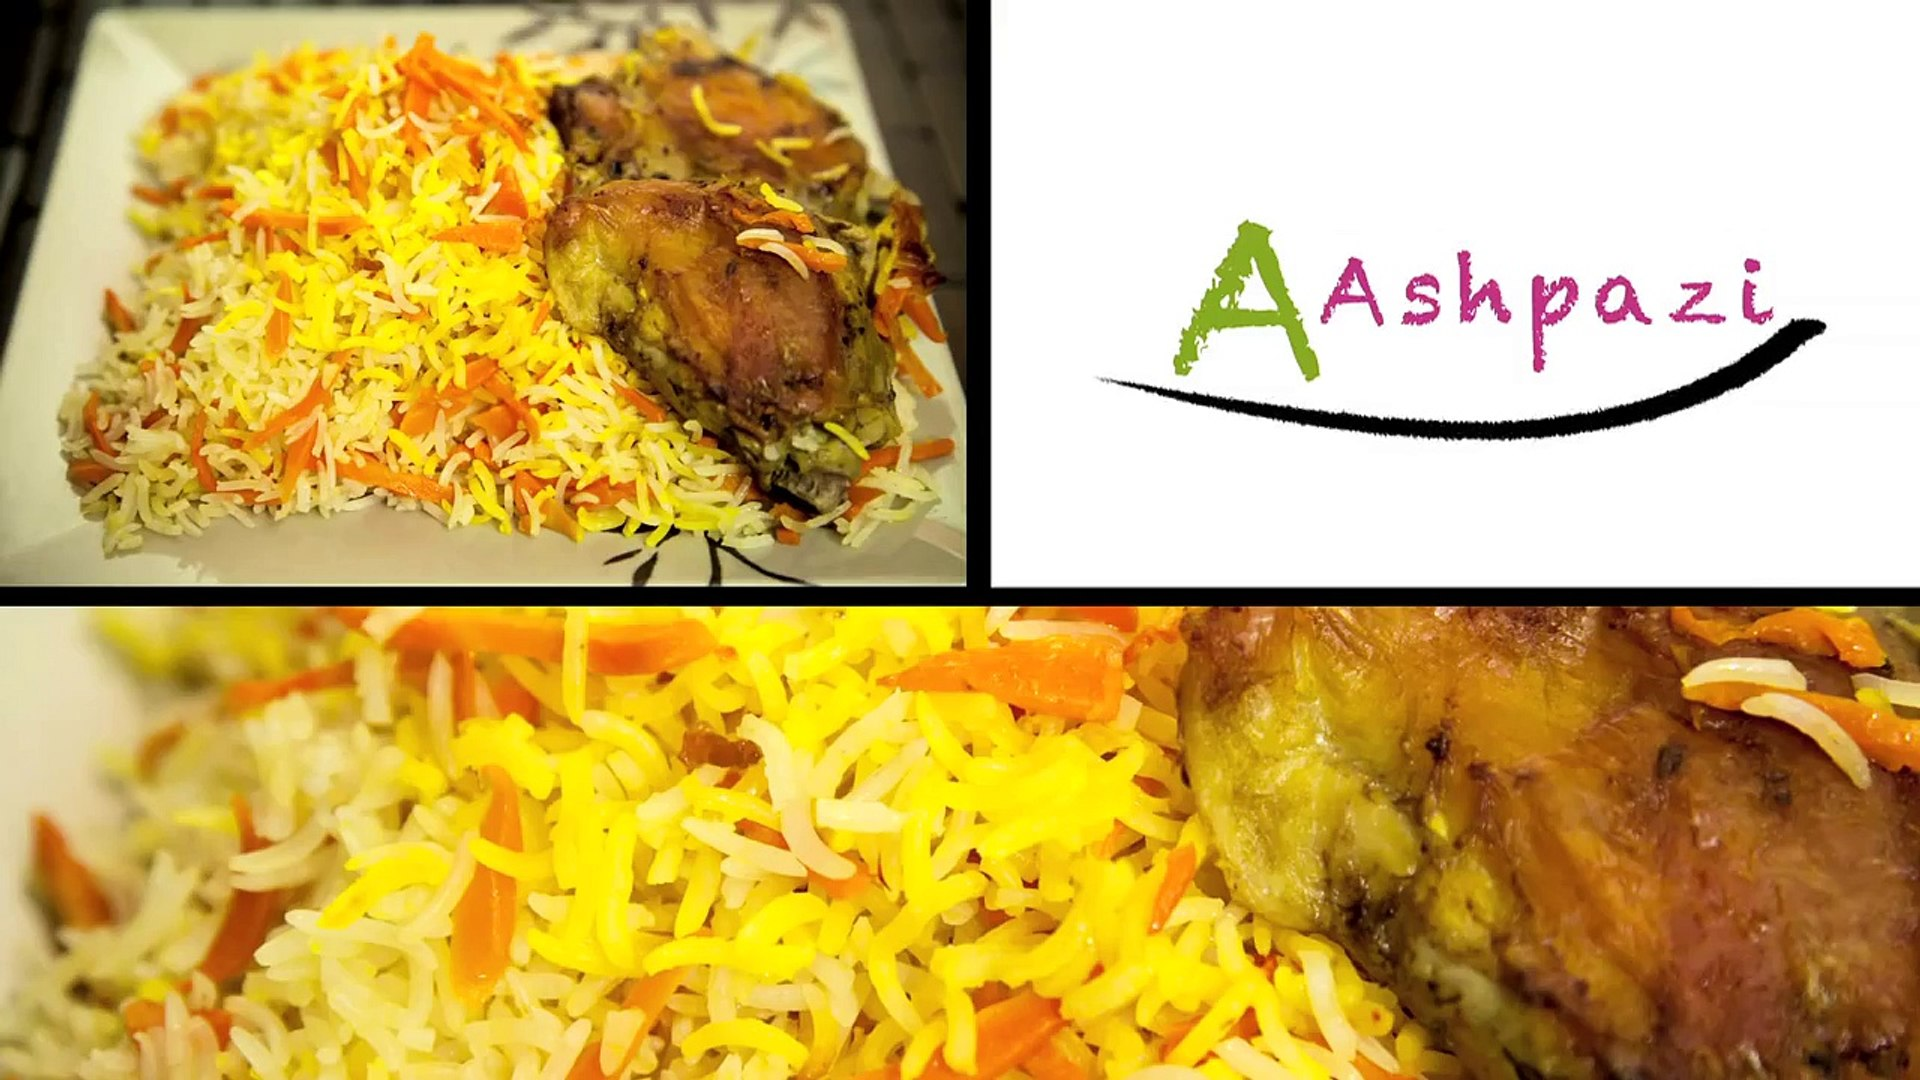 Carrot rice recipe (havij polo recipe) Persian rice with Chicken